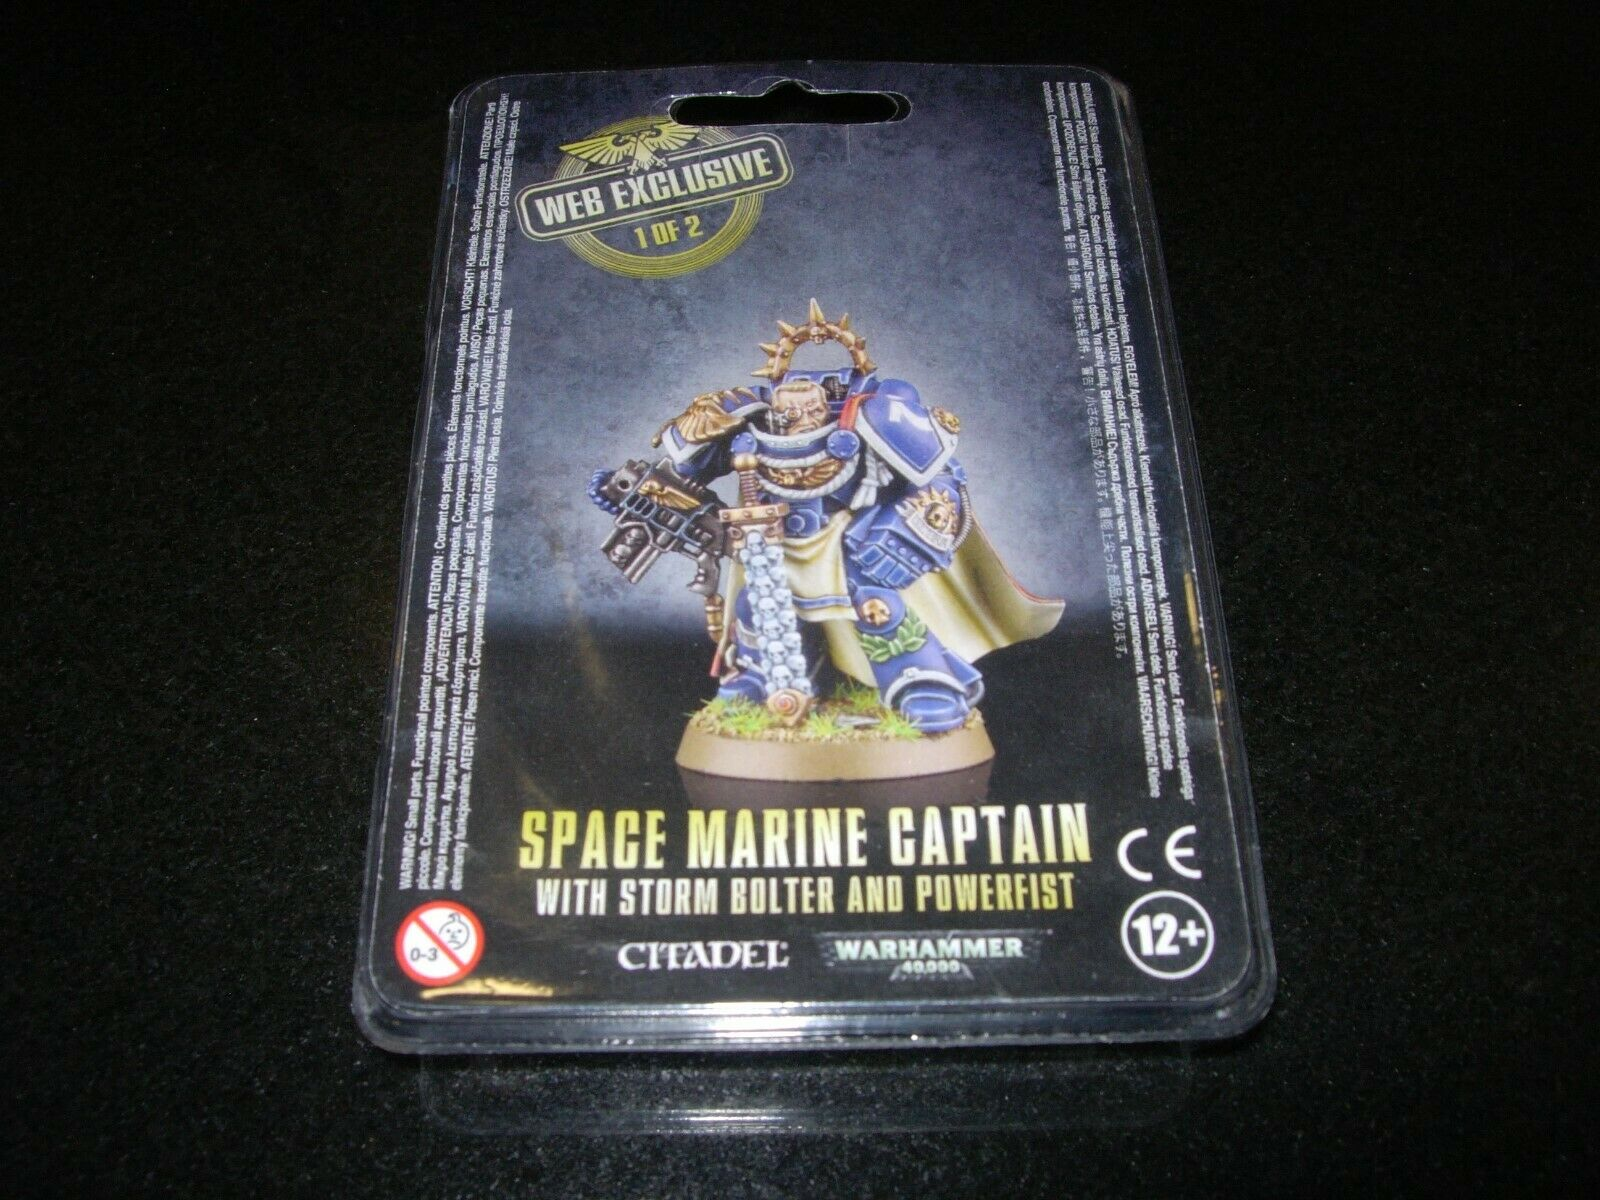 40k Adeptus Astartes Space Marine Captain (Web Exclusive Limited Edition 1 of 2)